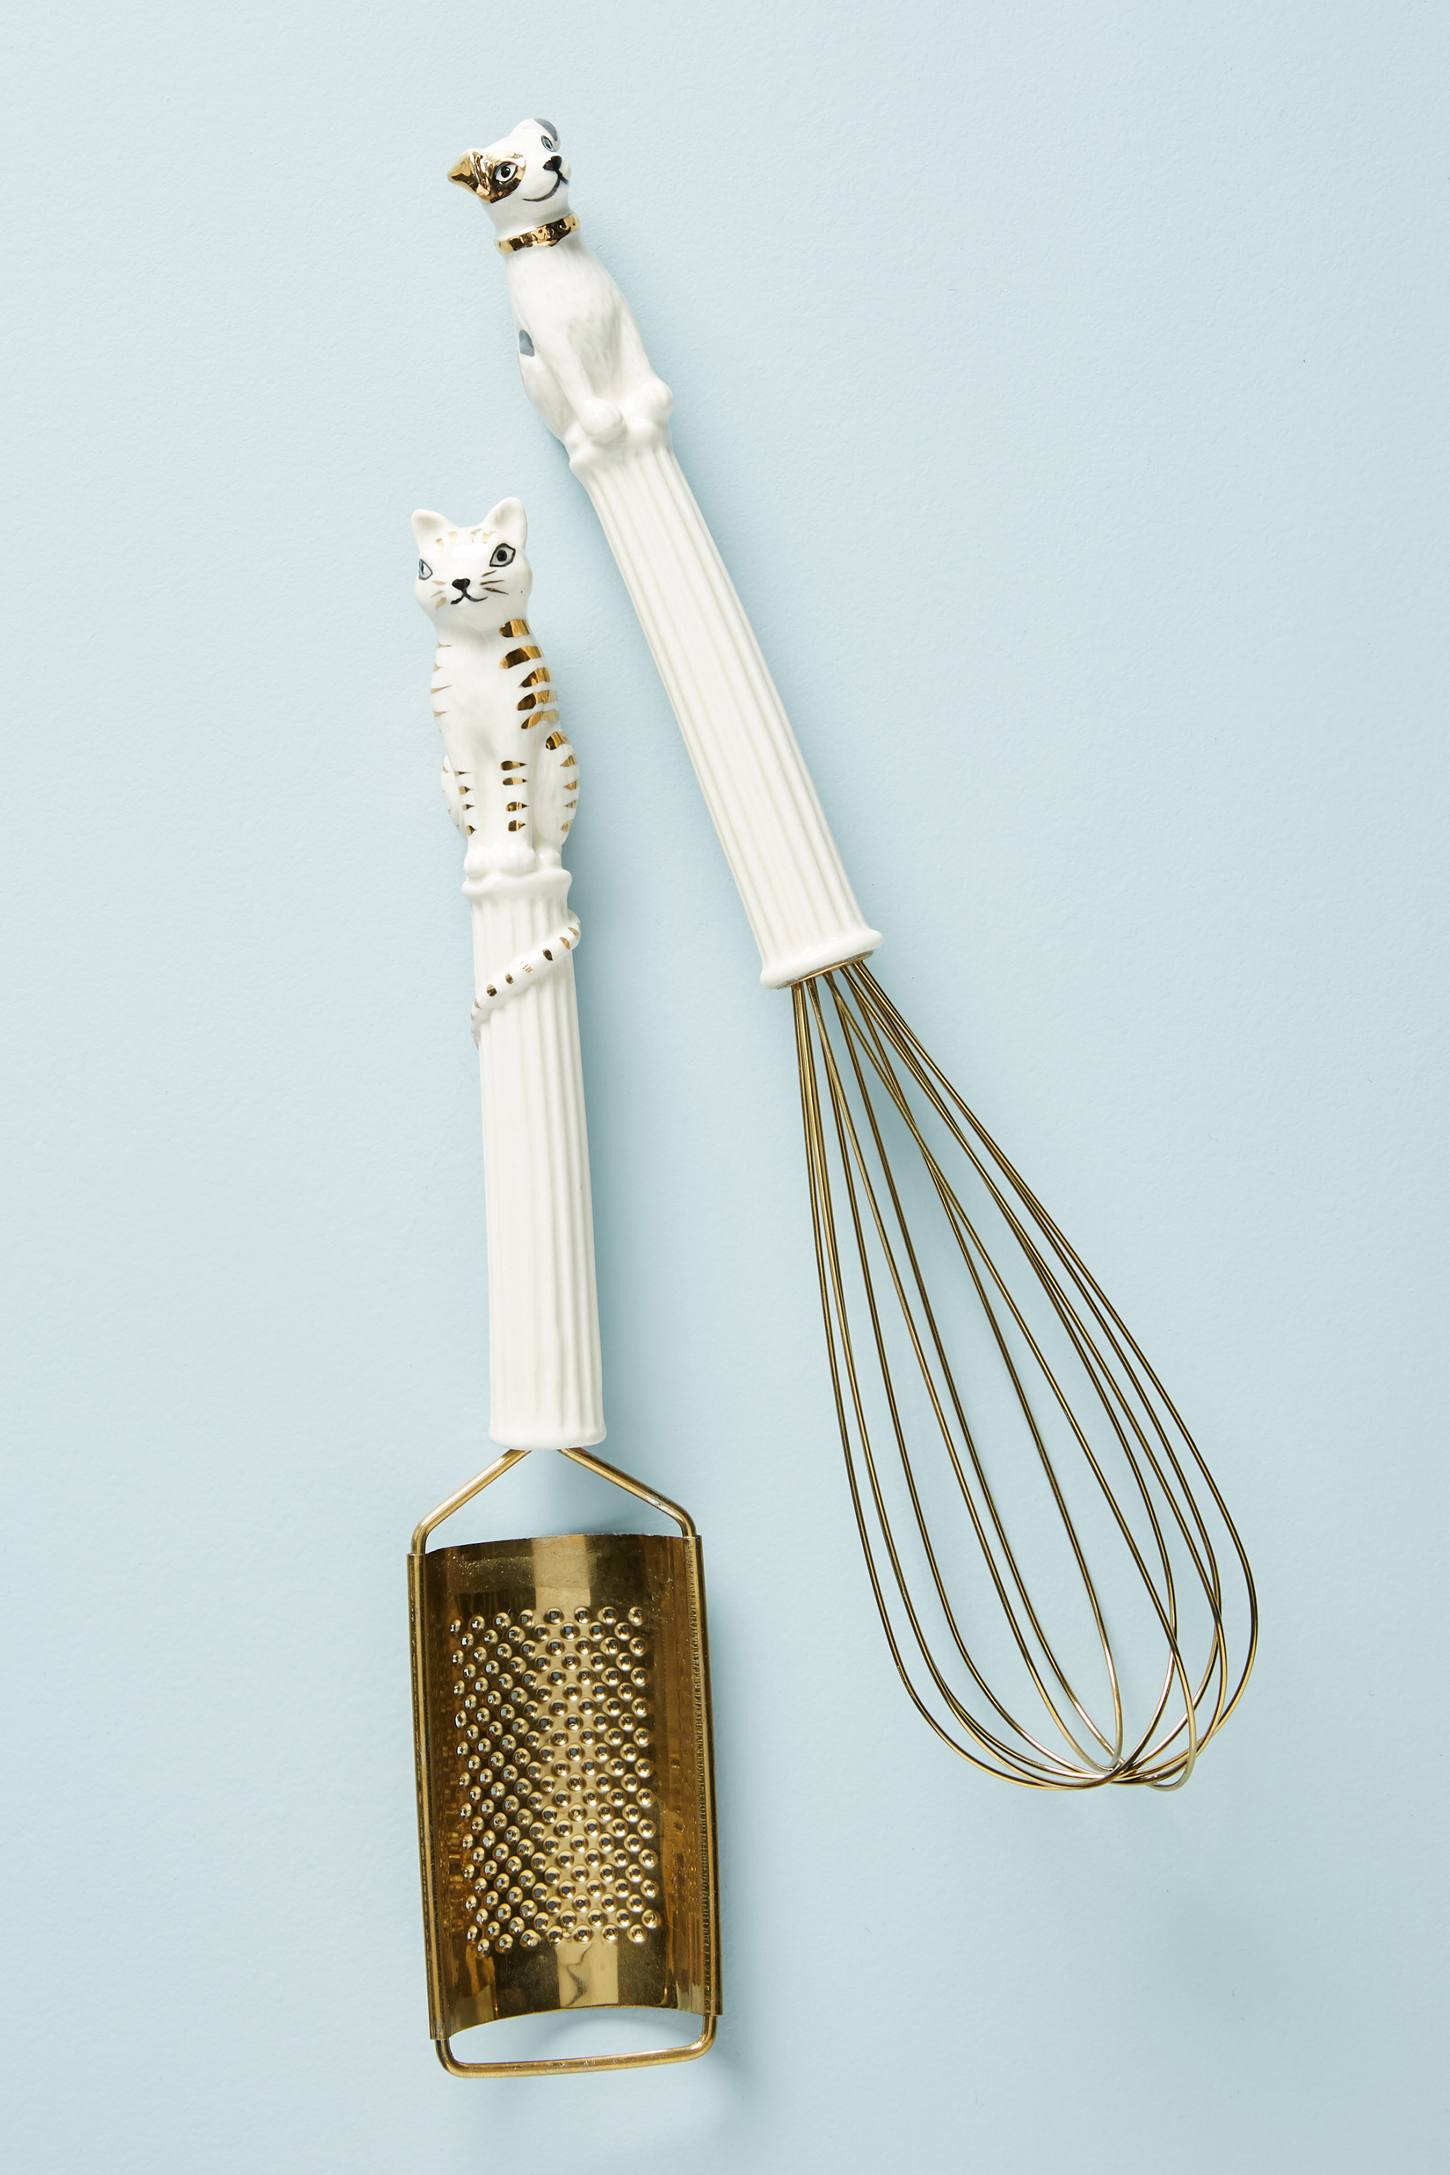 Dog and Cat Whisk and Grater